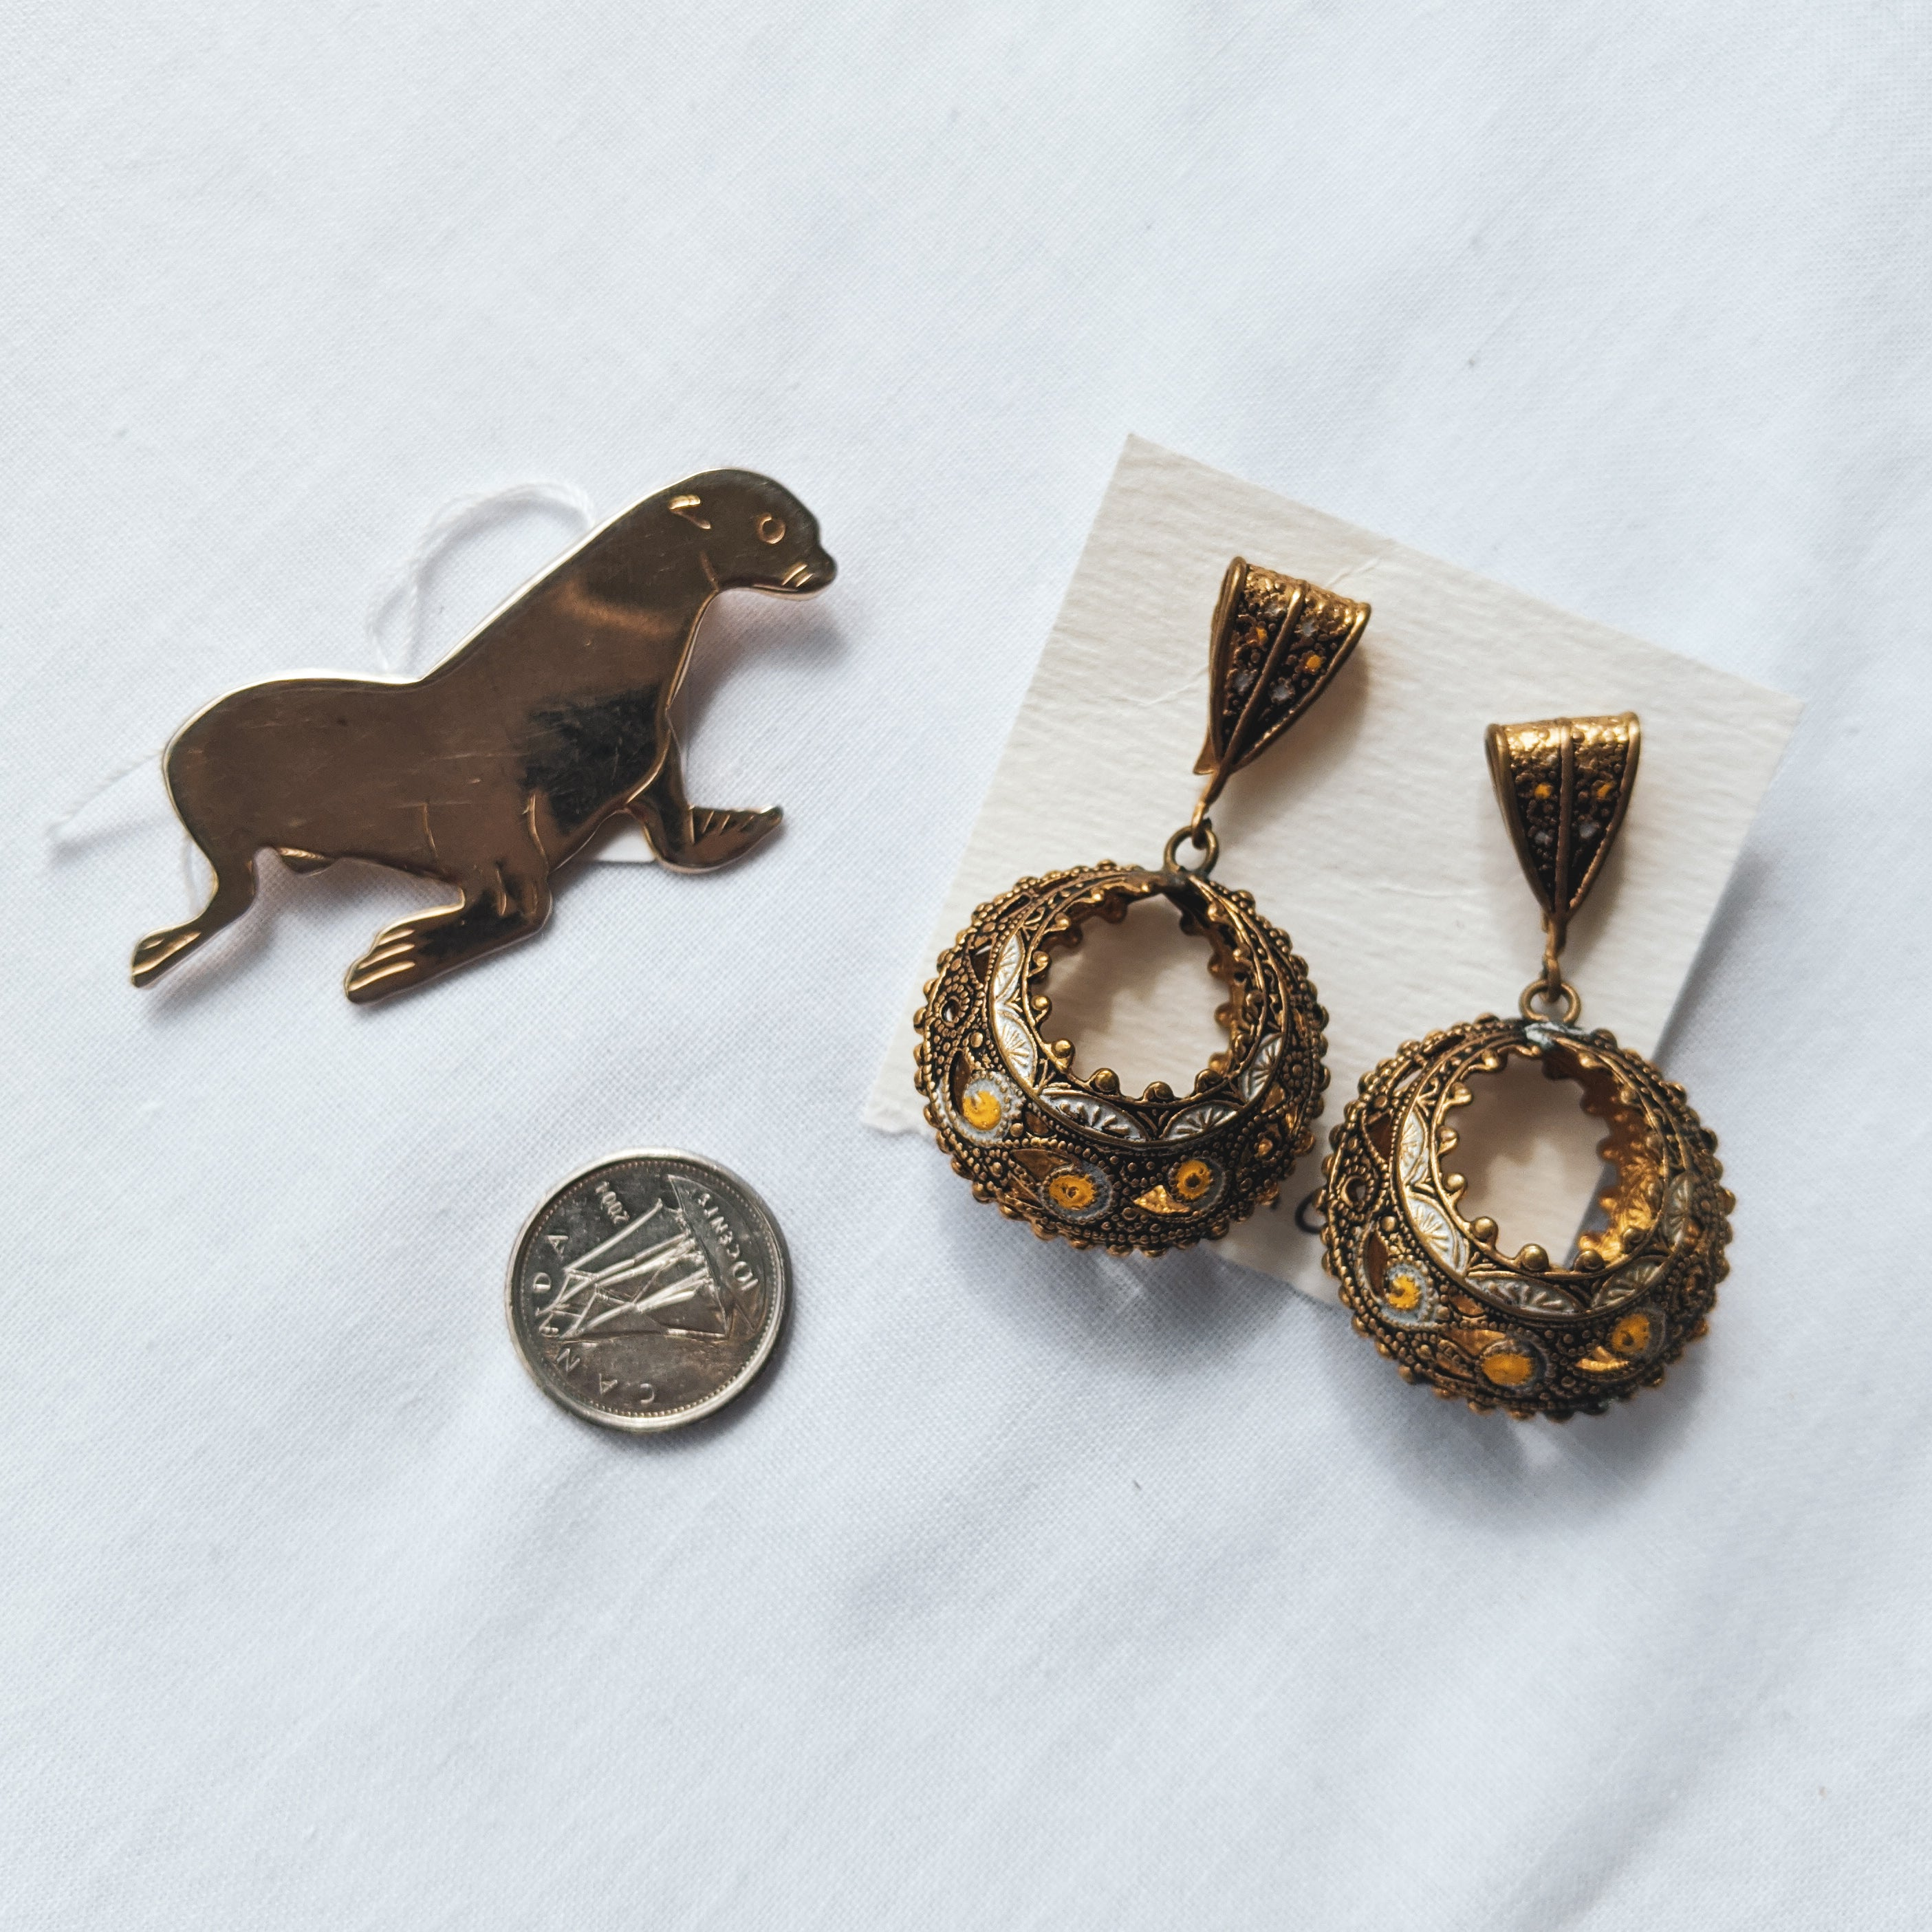 Hippy Earrings and Seal Pin